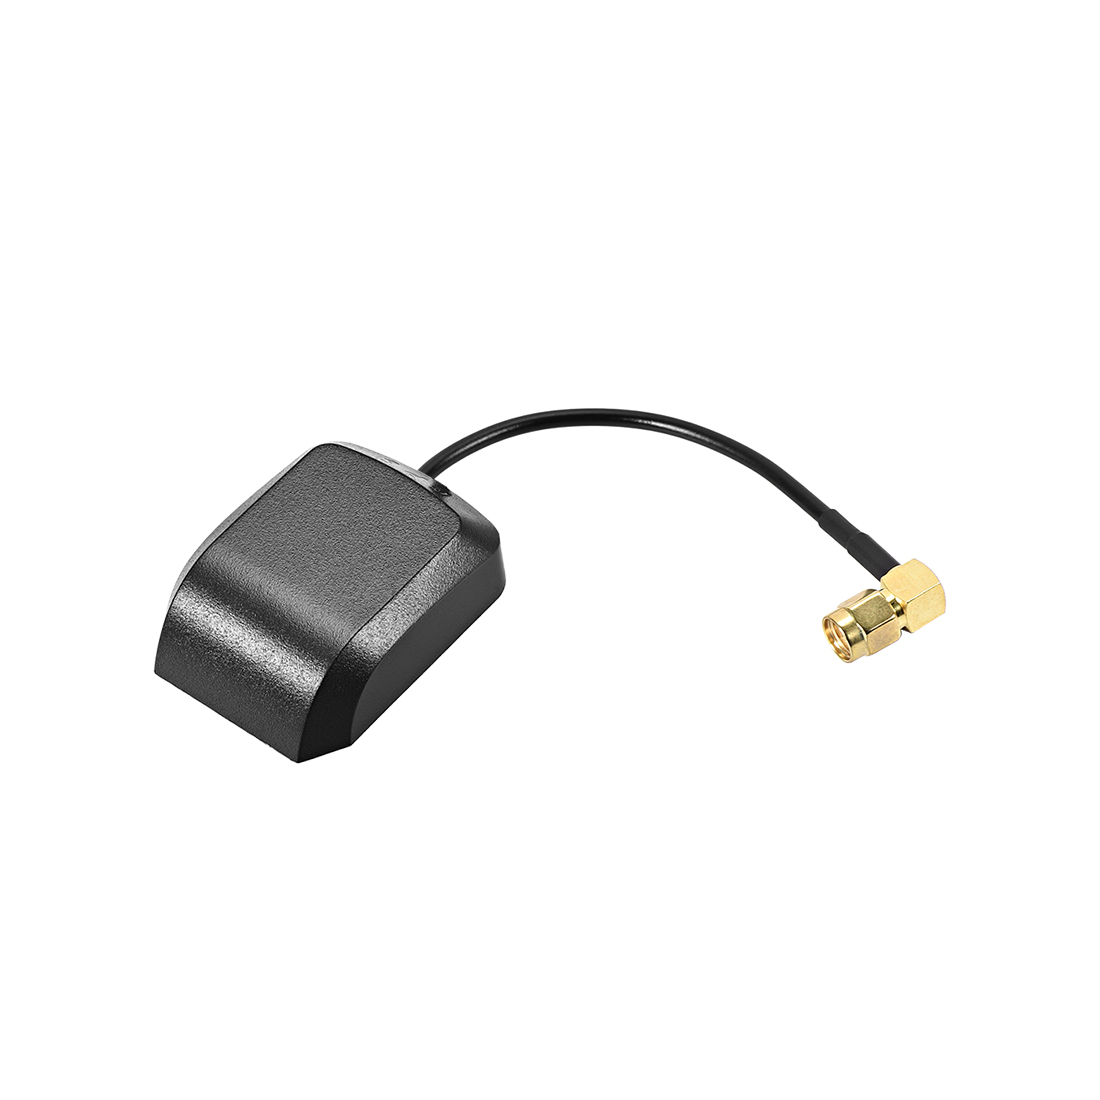 GPS Active Antenna 90-Degree SMA Male Plug 27dB Aerial Connector 0.05 Meter